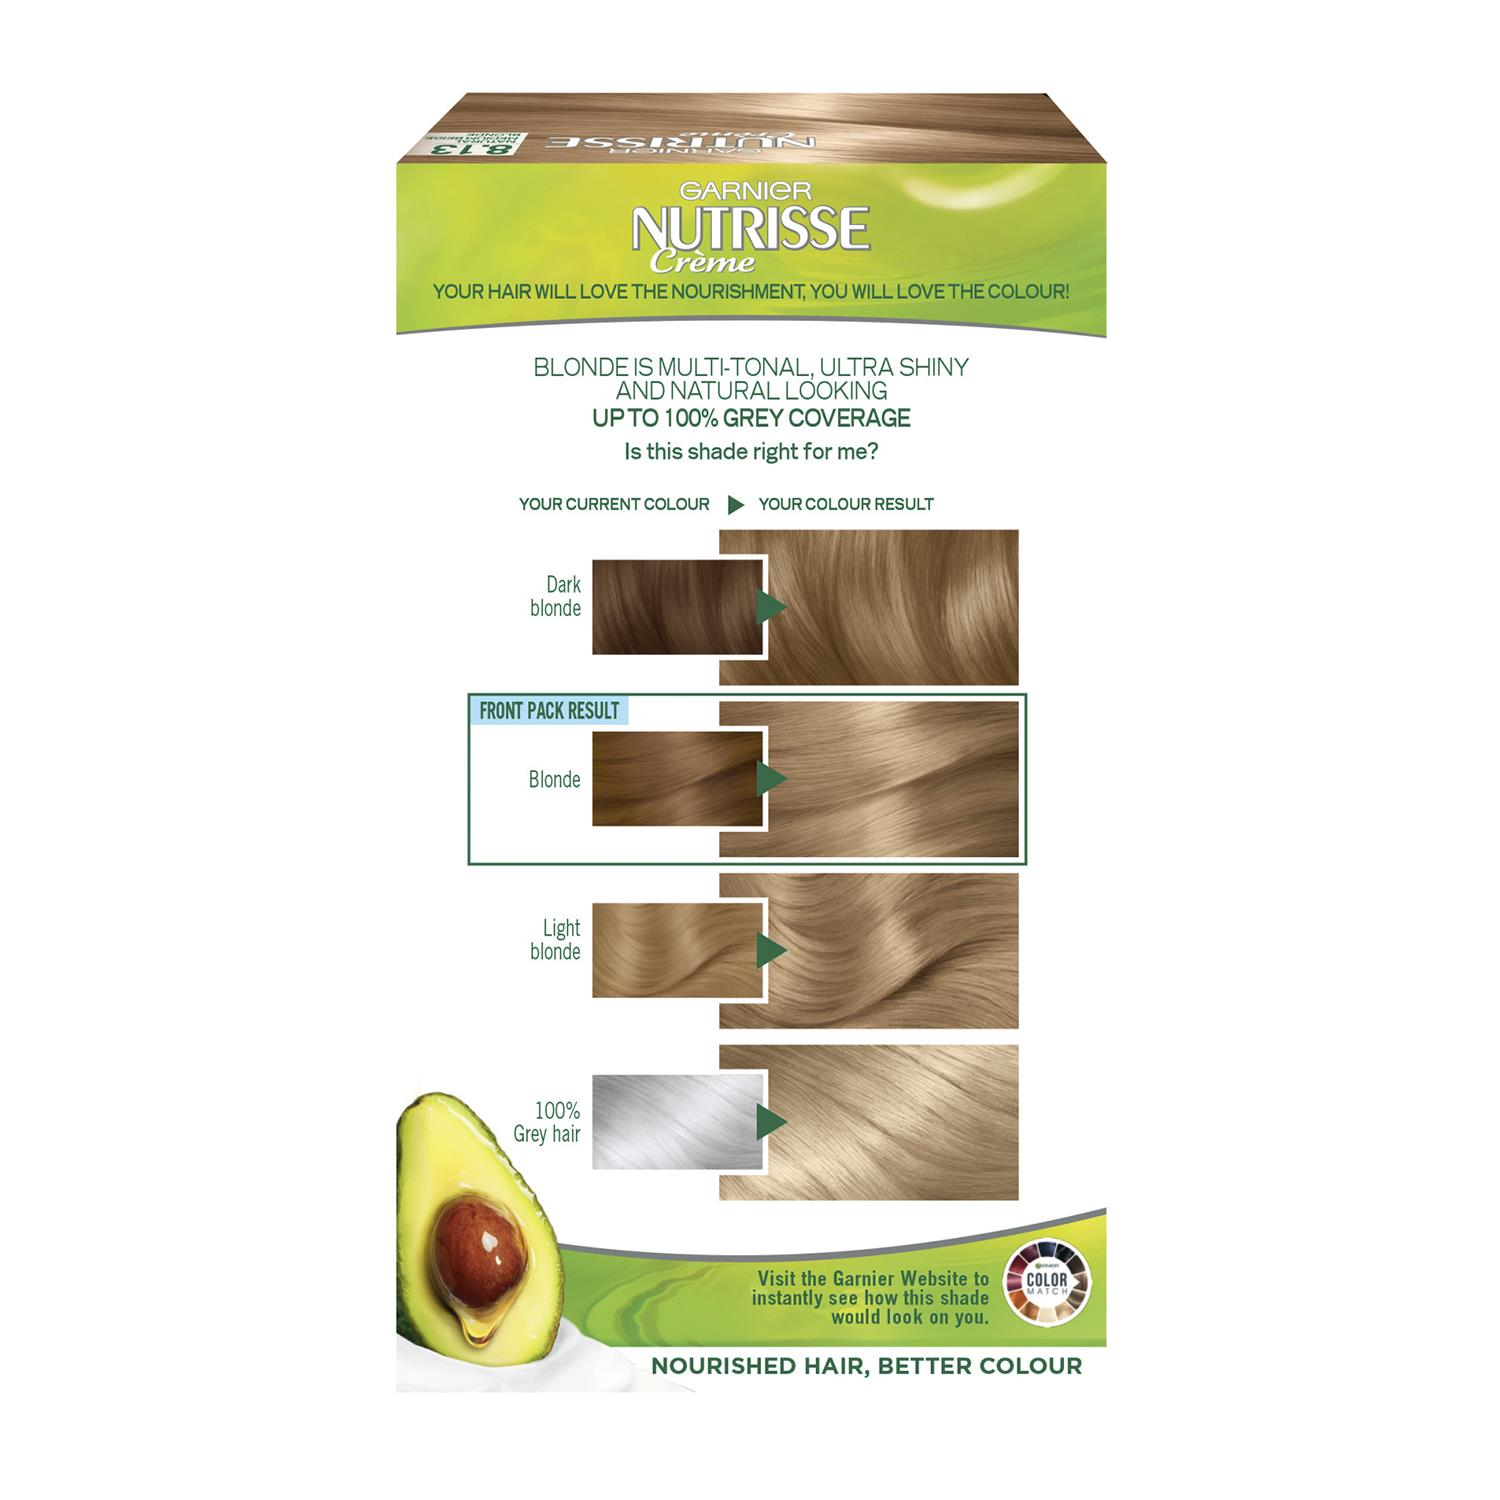 thumbnail 262 - 3 Pack Garnier Nutrisse Permanent Hair Dye With Different Shades